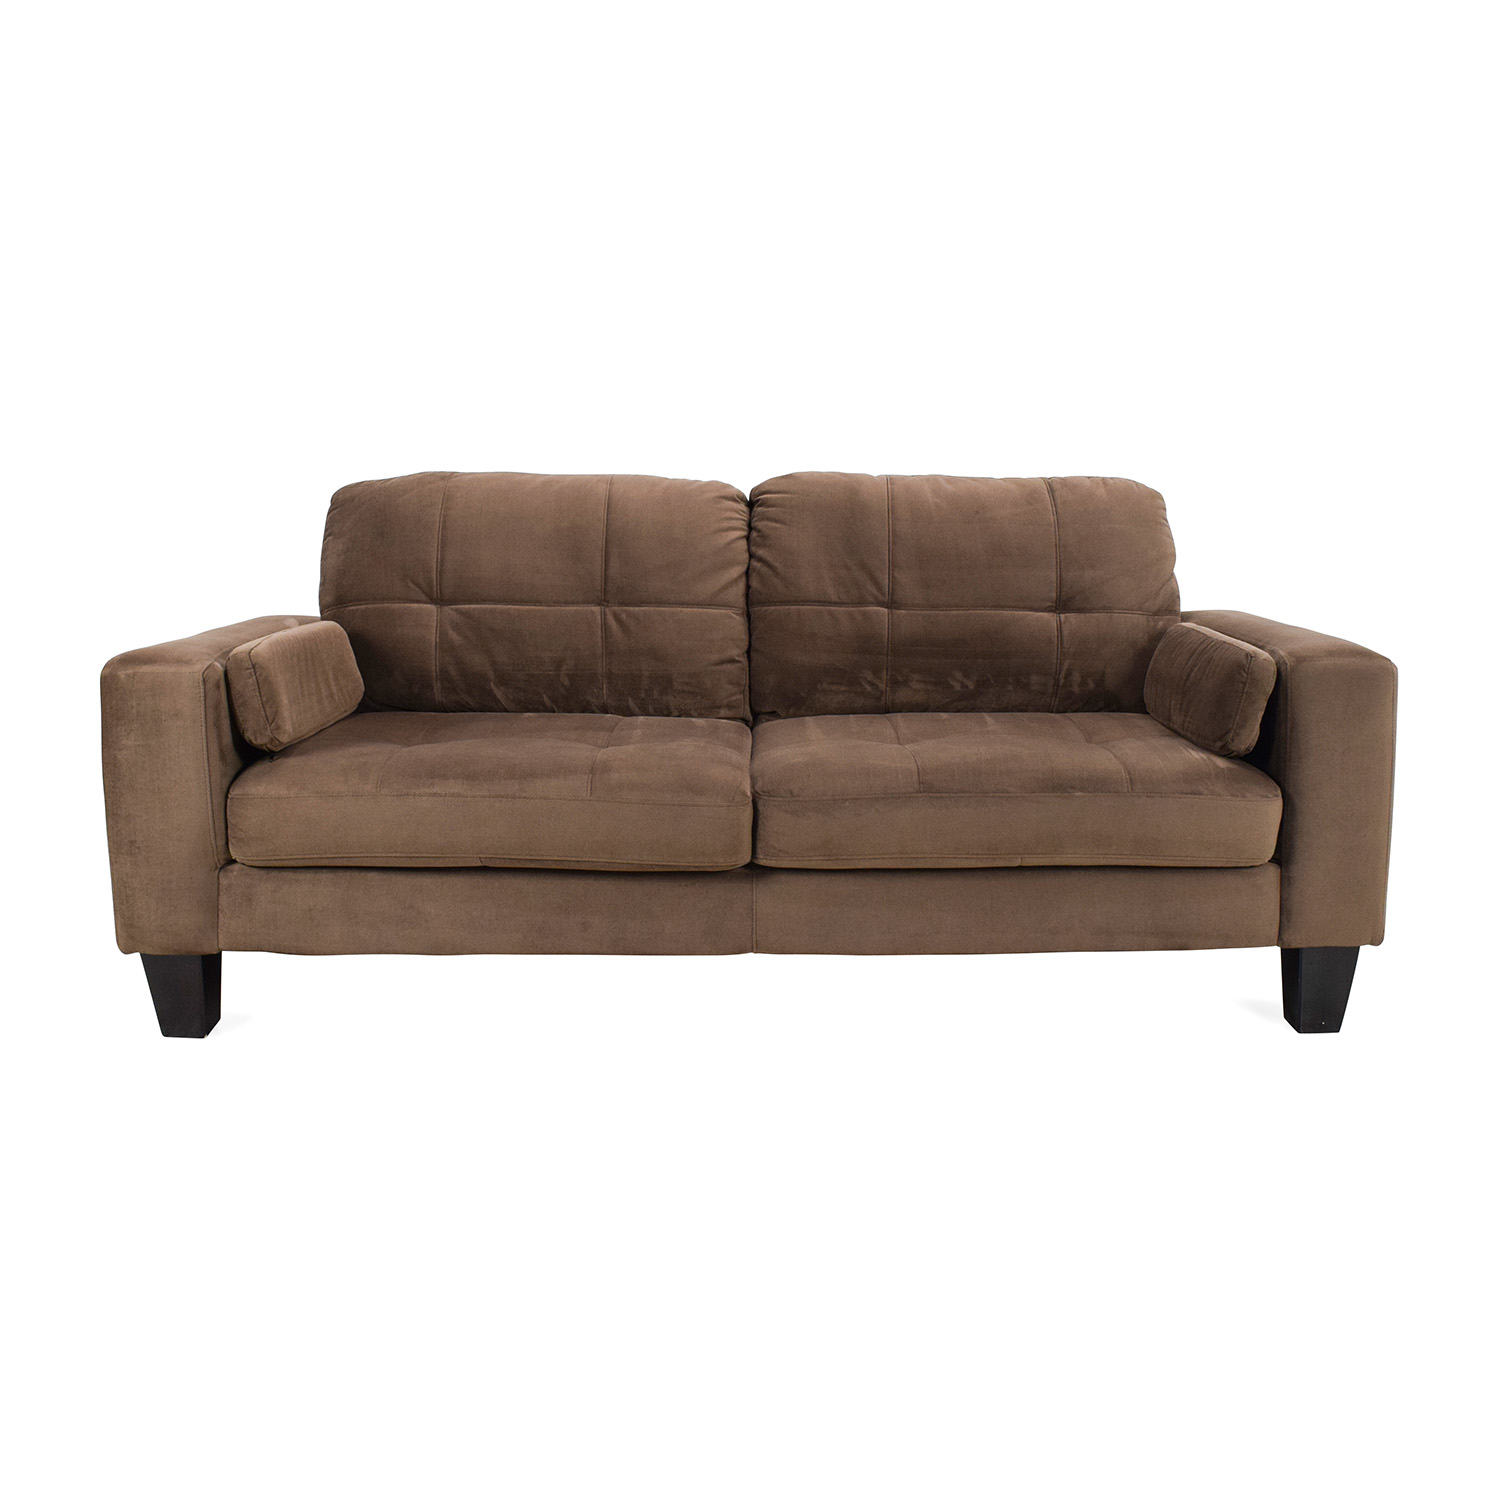 Jennifer sofas fantastic jennifer leather sofa with sofas for Sectional sofa jennifer convertible